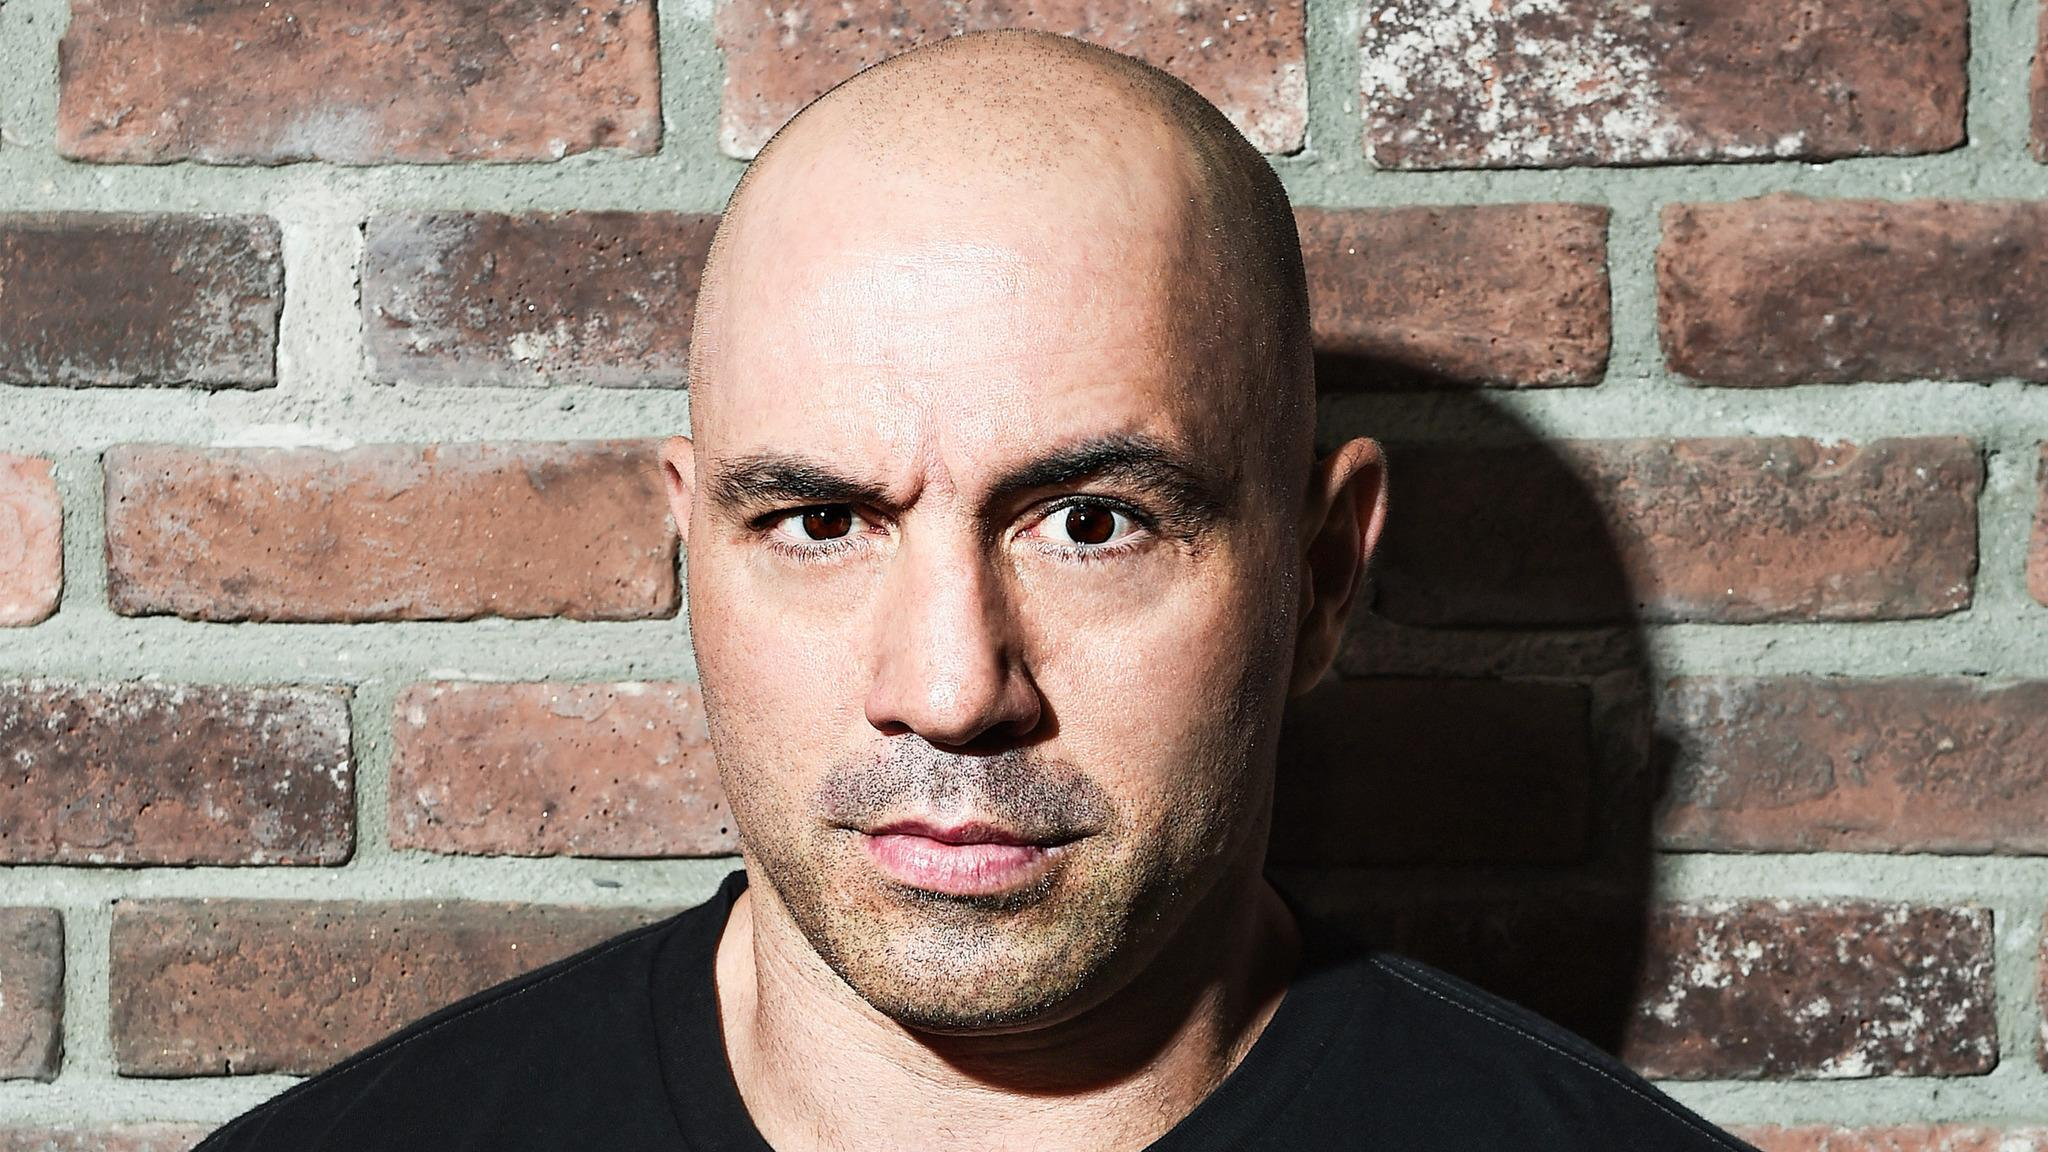 Joe Rogan at Hollywood Improv (The Main Room)